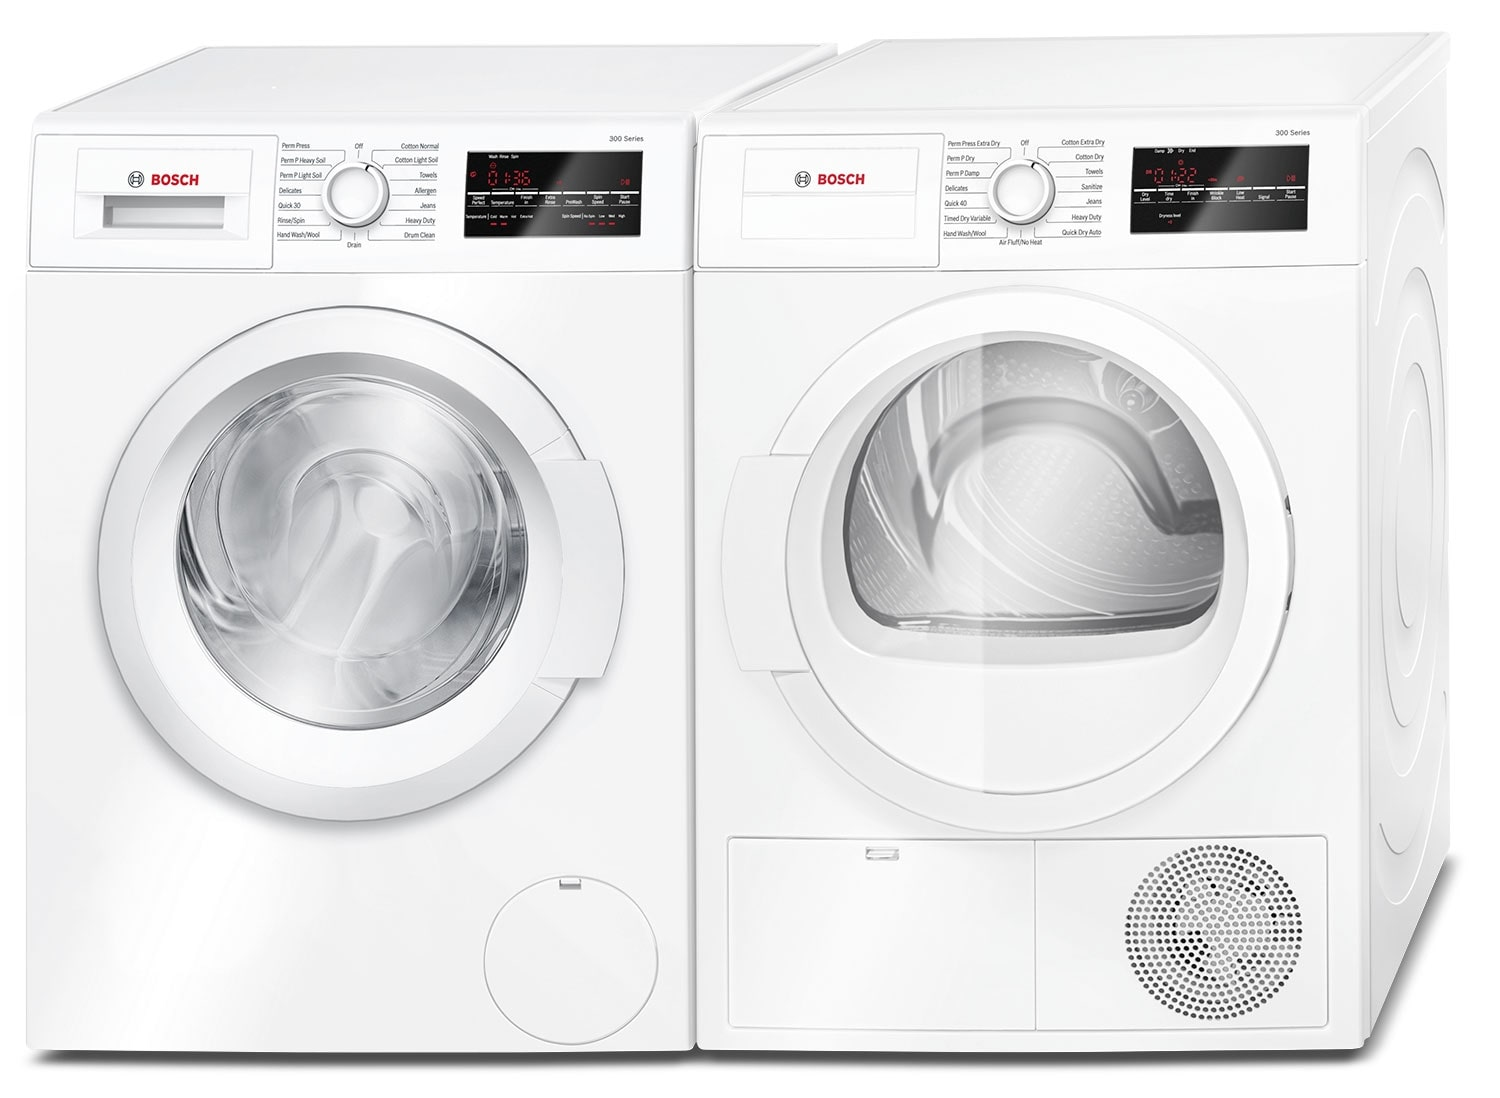 Bosch 2.2 Cu. Ft. Compact Washer and 4.0 Cu. Ft. Compact Condensation Dryer - White